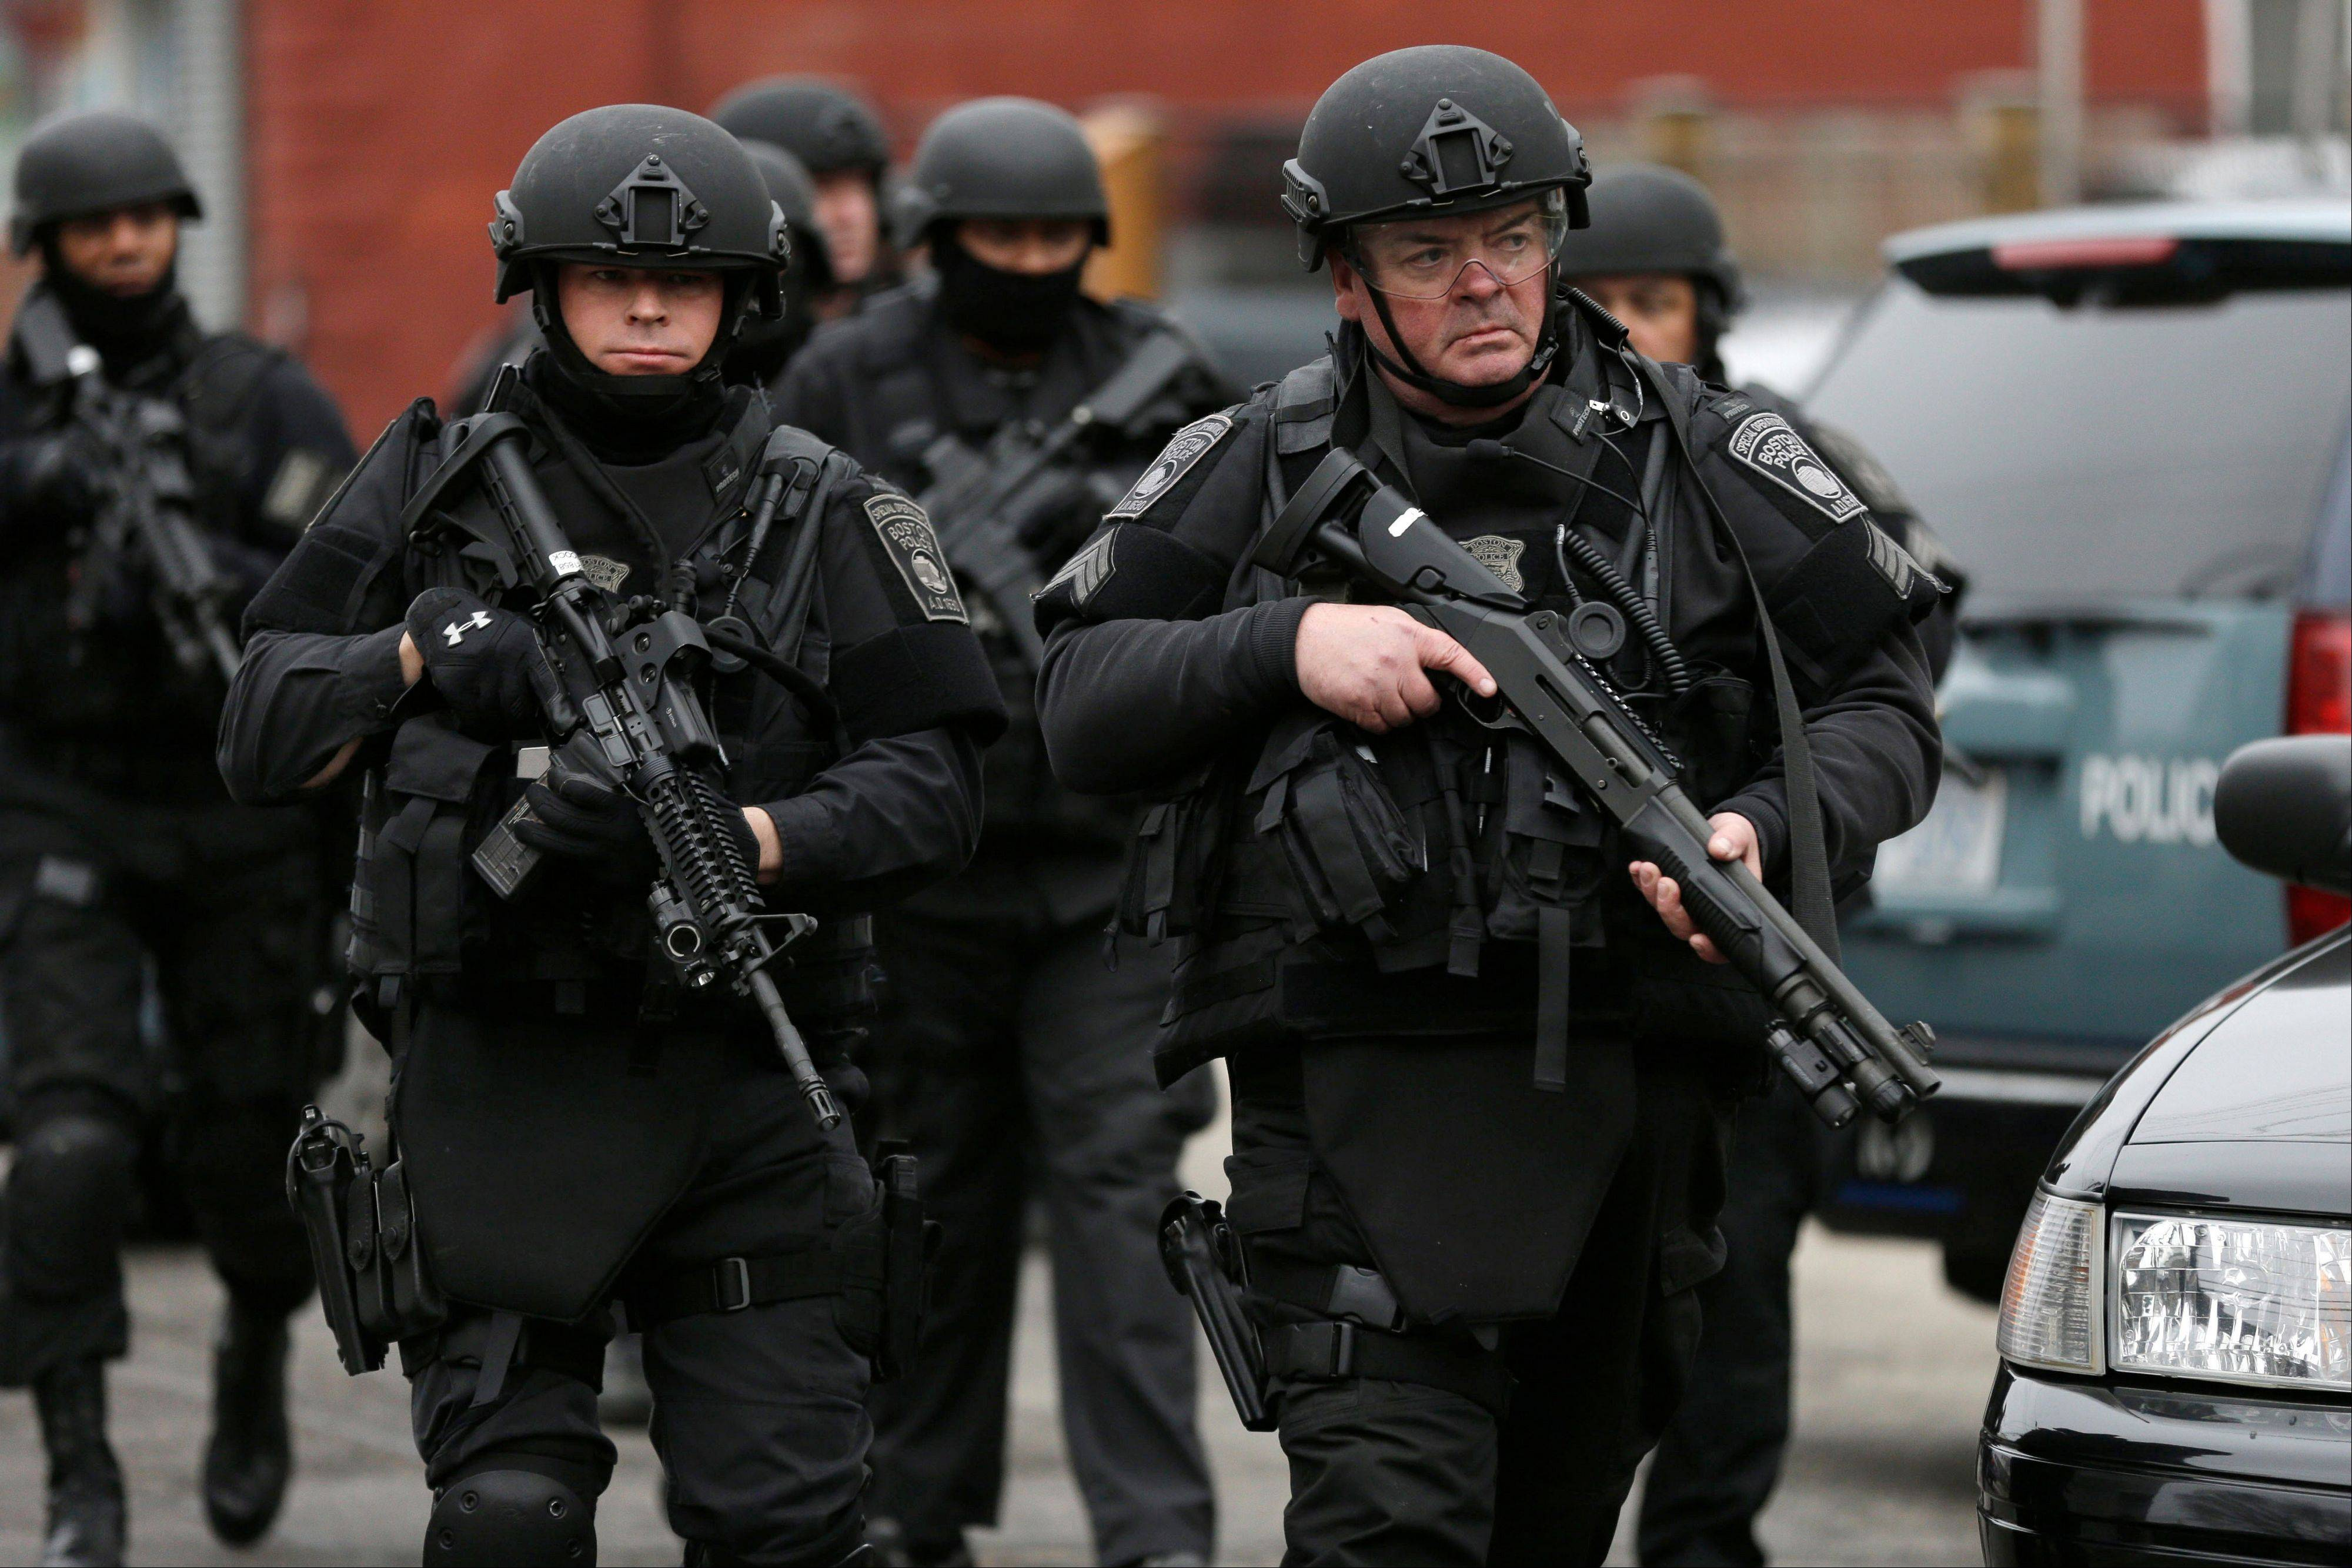 Police in tactical gear conduct a search for a marathon bombing suspect Friday in Watertown, Mass. The bombs that blew up seconds apart near the finish line of the Boston Marathon left the streets spattered with blood and glass, and gaping questions of who chose to attack and why.